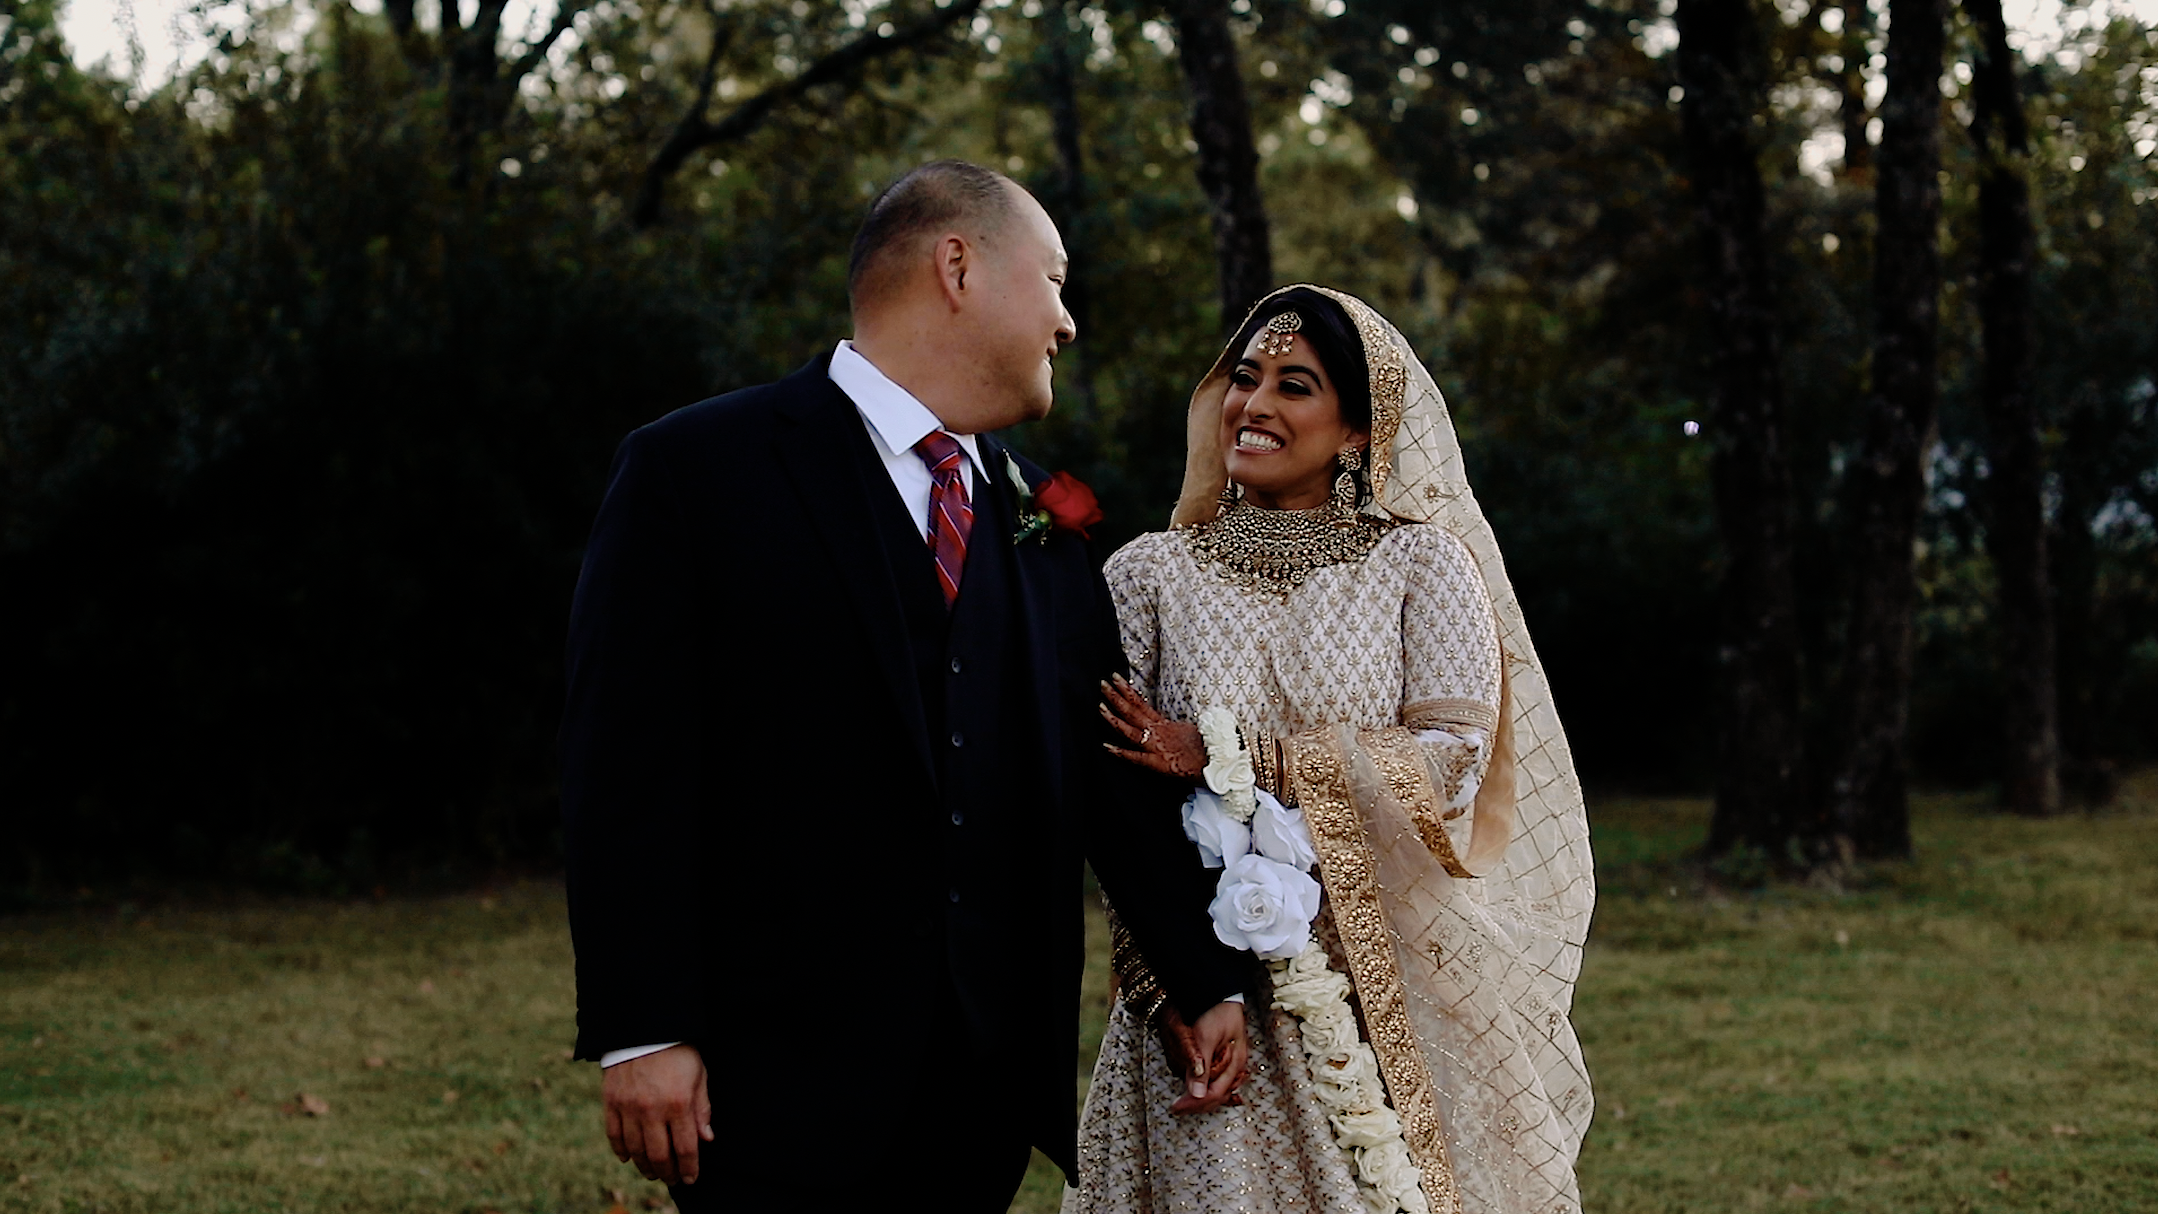 Kamilah + Najib | Rockwall, Texas | The Springs